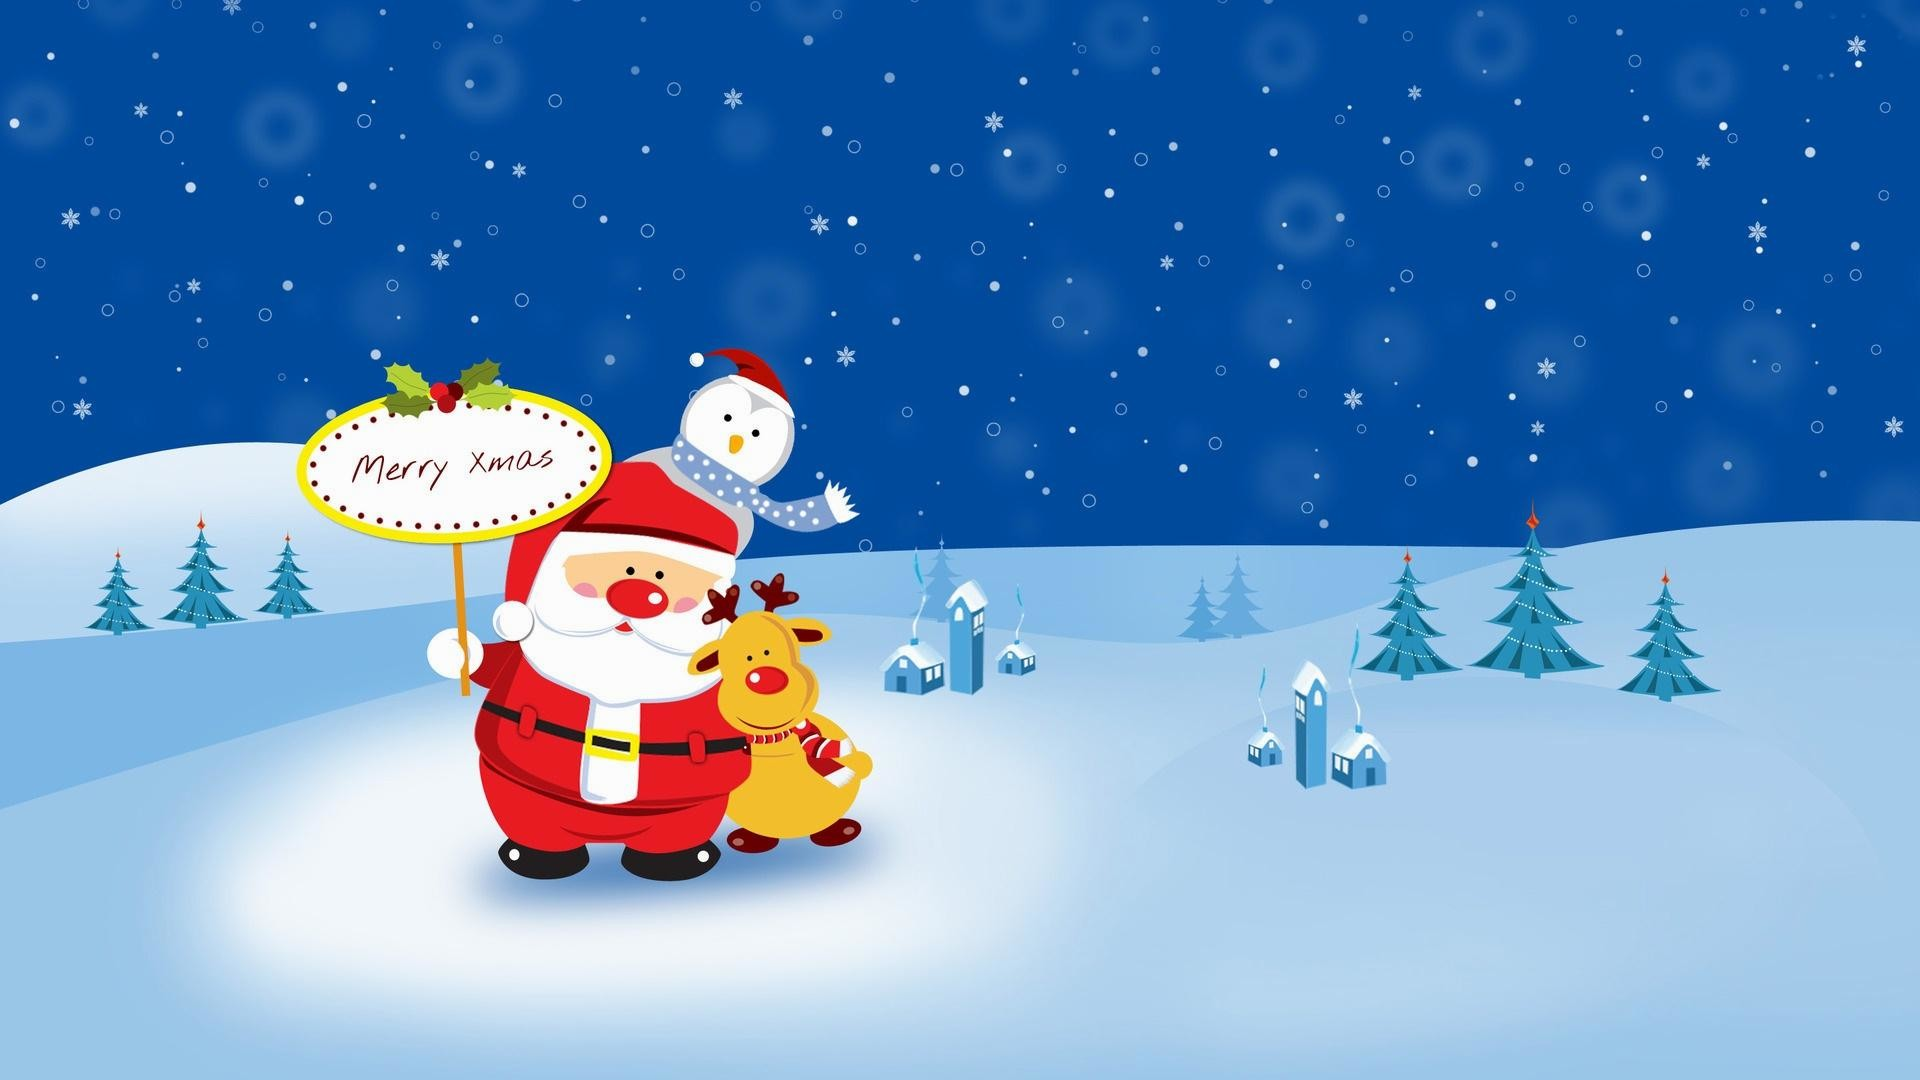 … free christmas wallpaper for android phone …